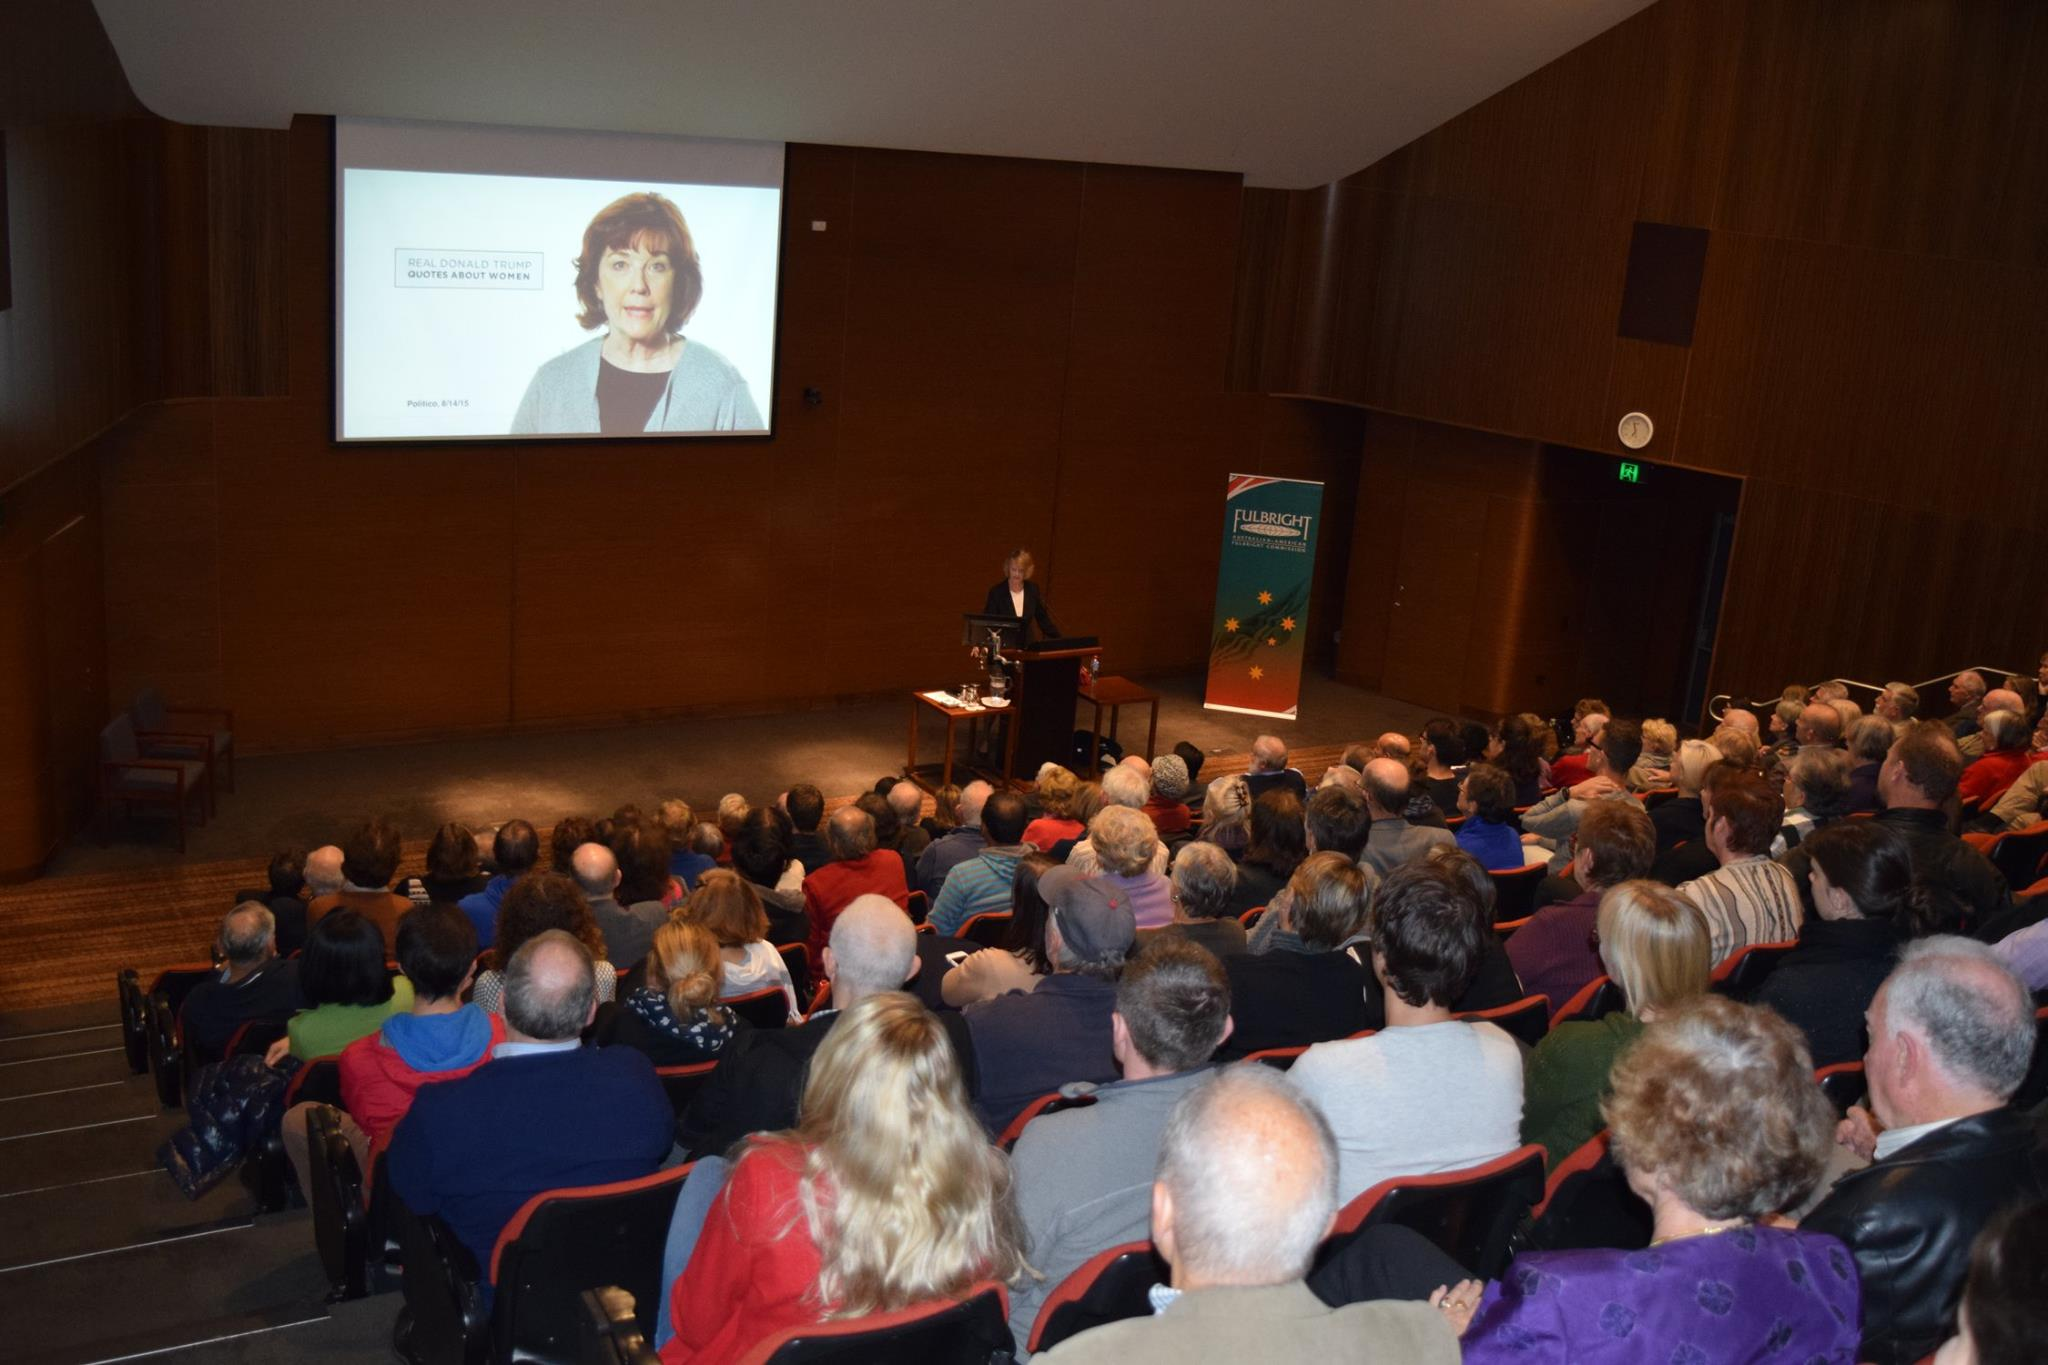 """Professor Weissert's public lecture """"What the Heck is Going on in the U.S. Presidential Election"""" in Perth"""